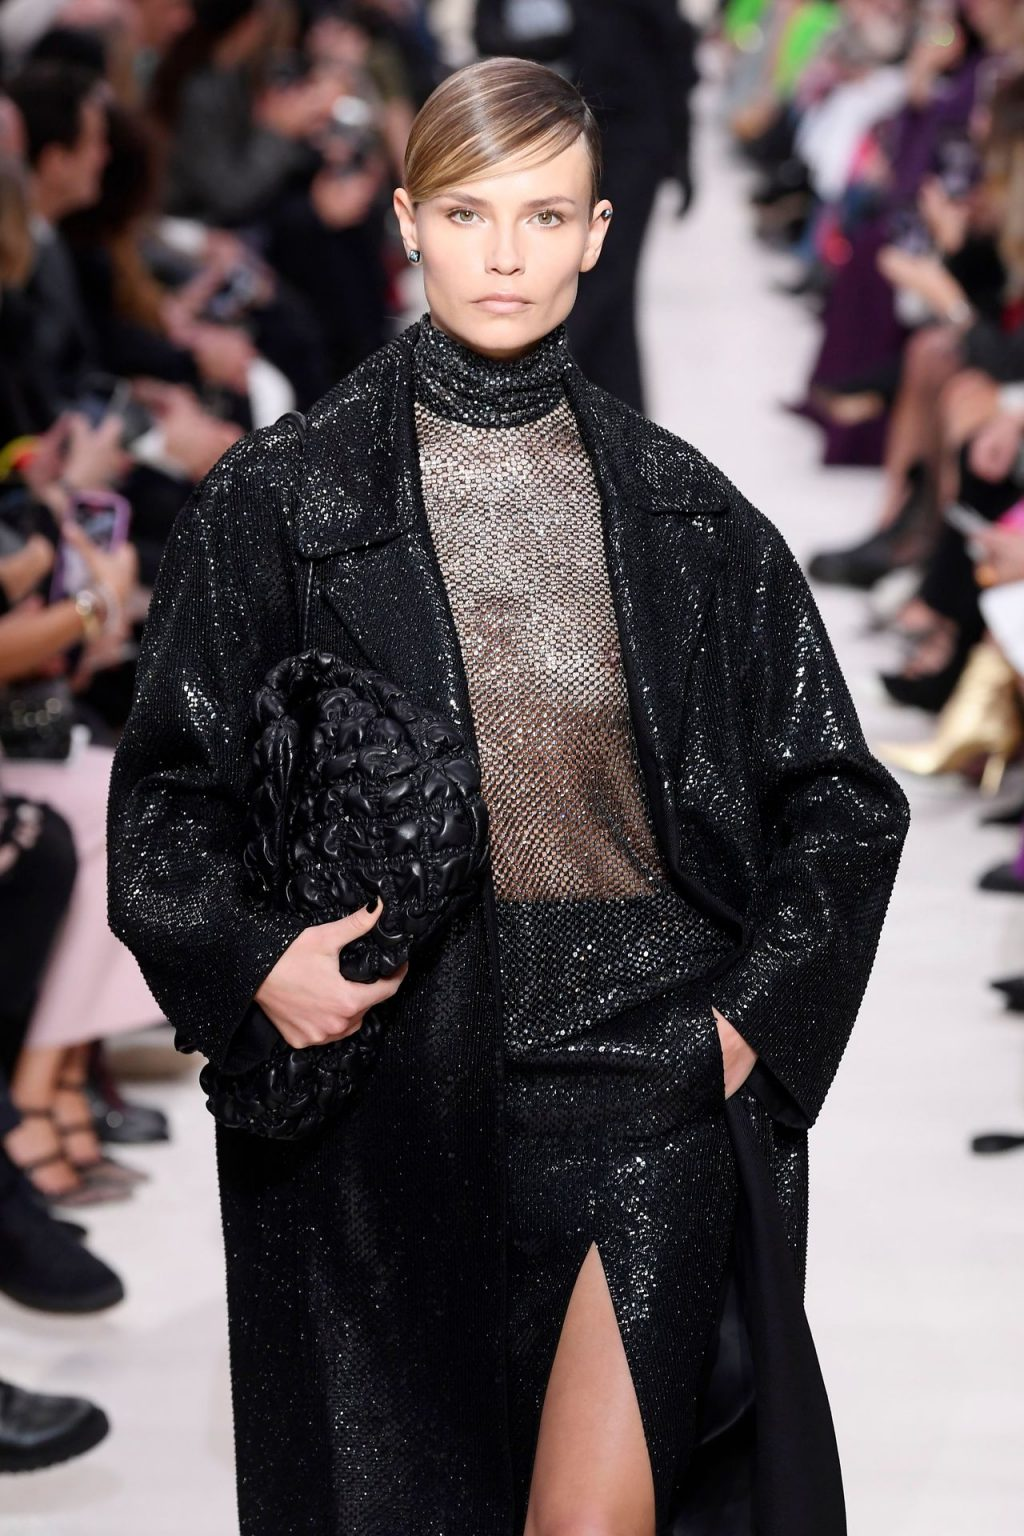 Natasha Poly Walks in a See Through Top on the Runway for the Valentino Show (8 Photos + GIF)